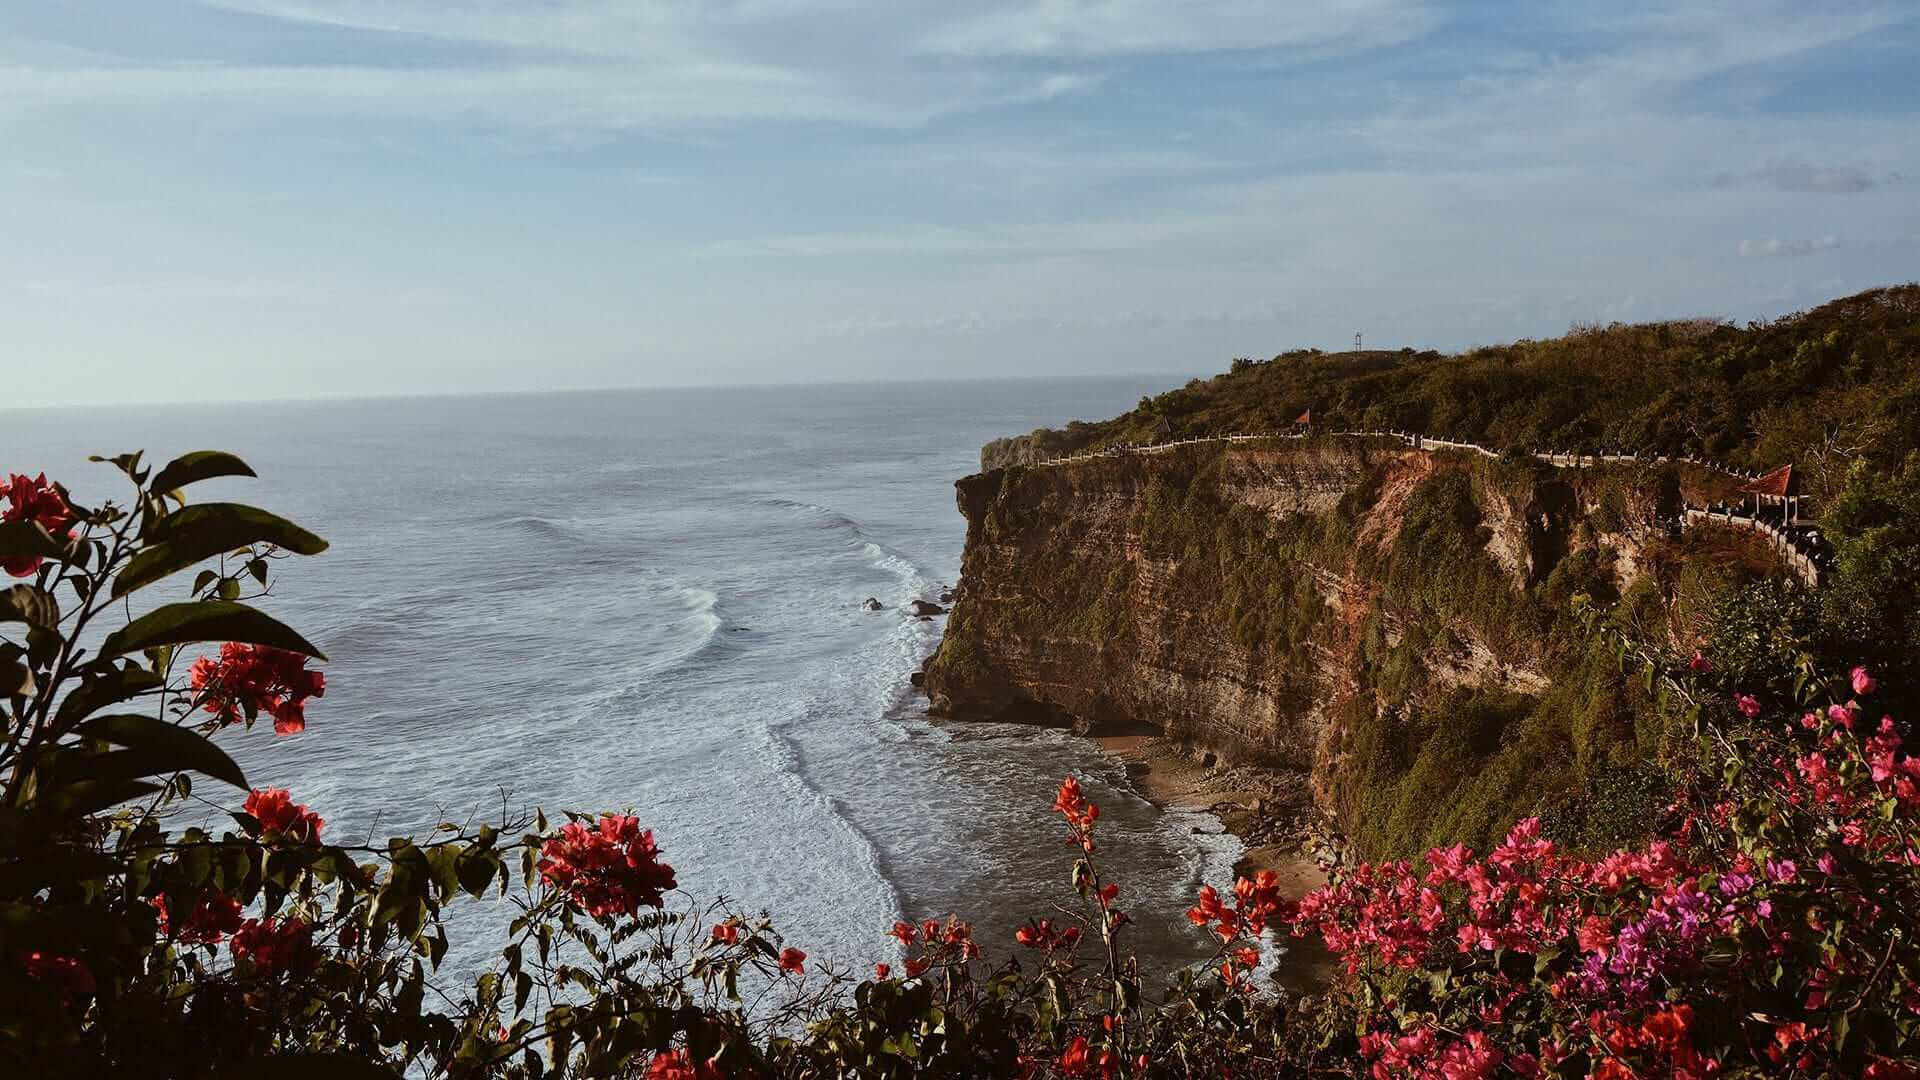 High cliffs above the ocean at dusk. Flowers in front